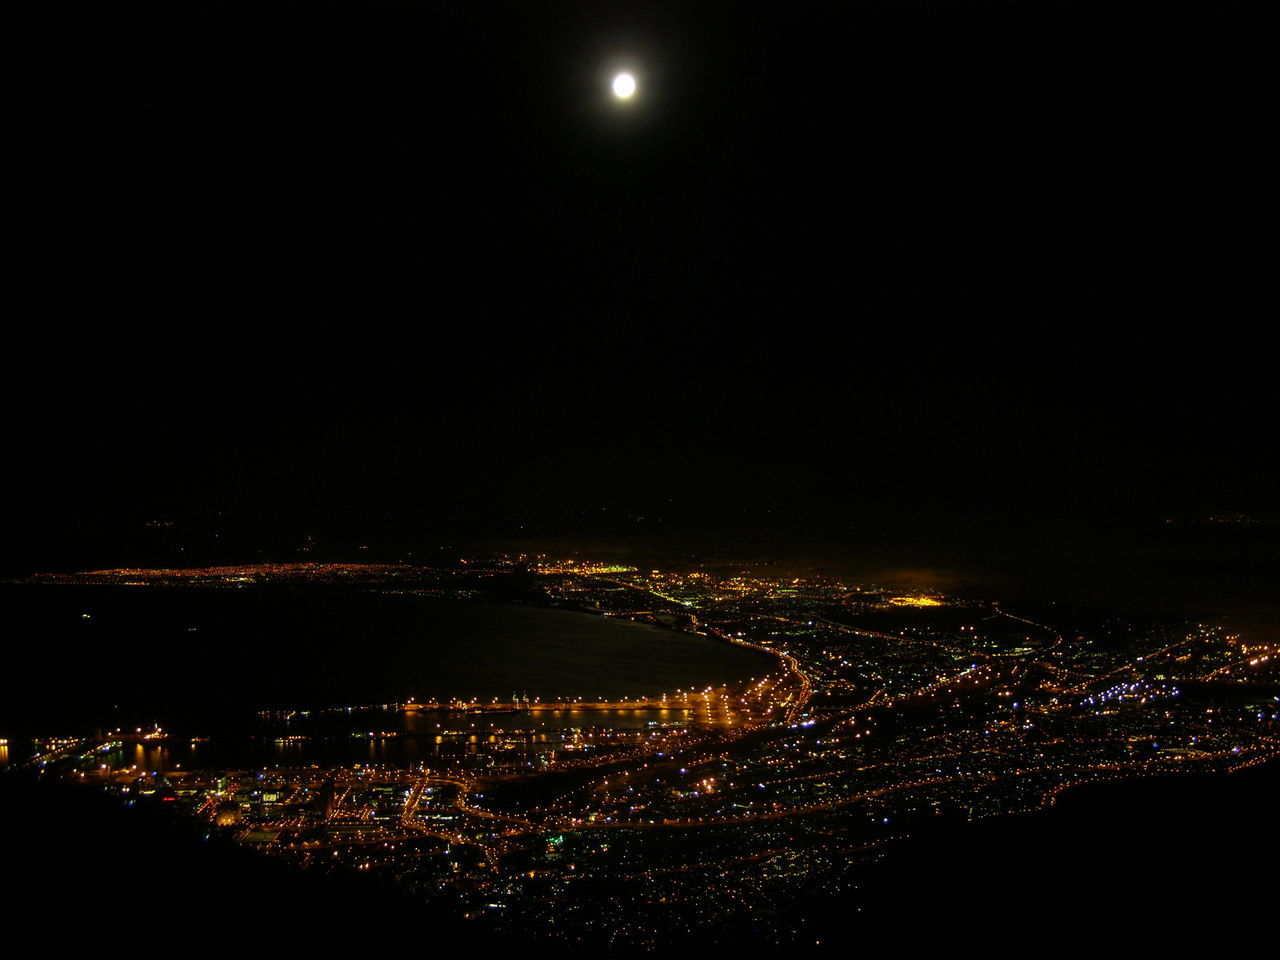 Cape town at night from Table Mountain Cape Town Capetown City Cityscape Cityscapes Full Moon Moon Light Moonlight South Africa Night Lights Night Photography Nightphotography Perspective Scenics Water Africa Capetownlights Aerialview Aerial View Aerial Shot Cities At Night Cities_collection Cities